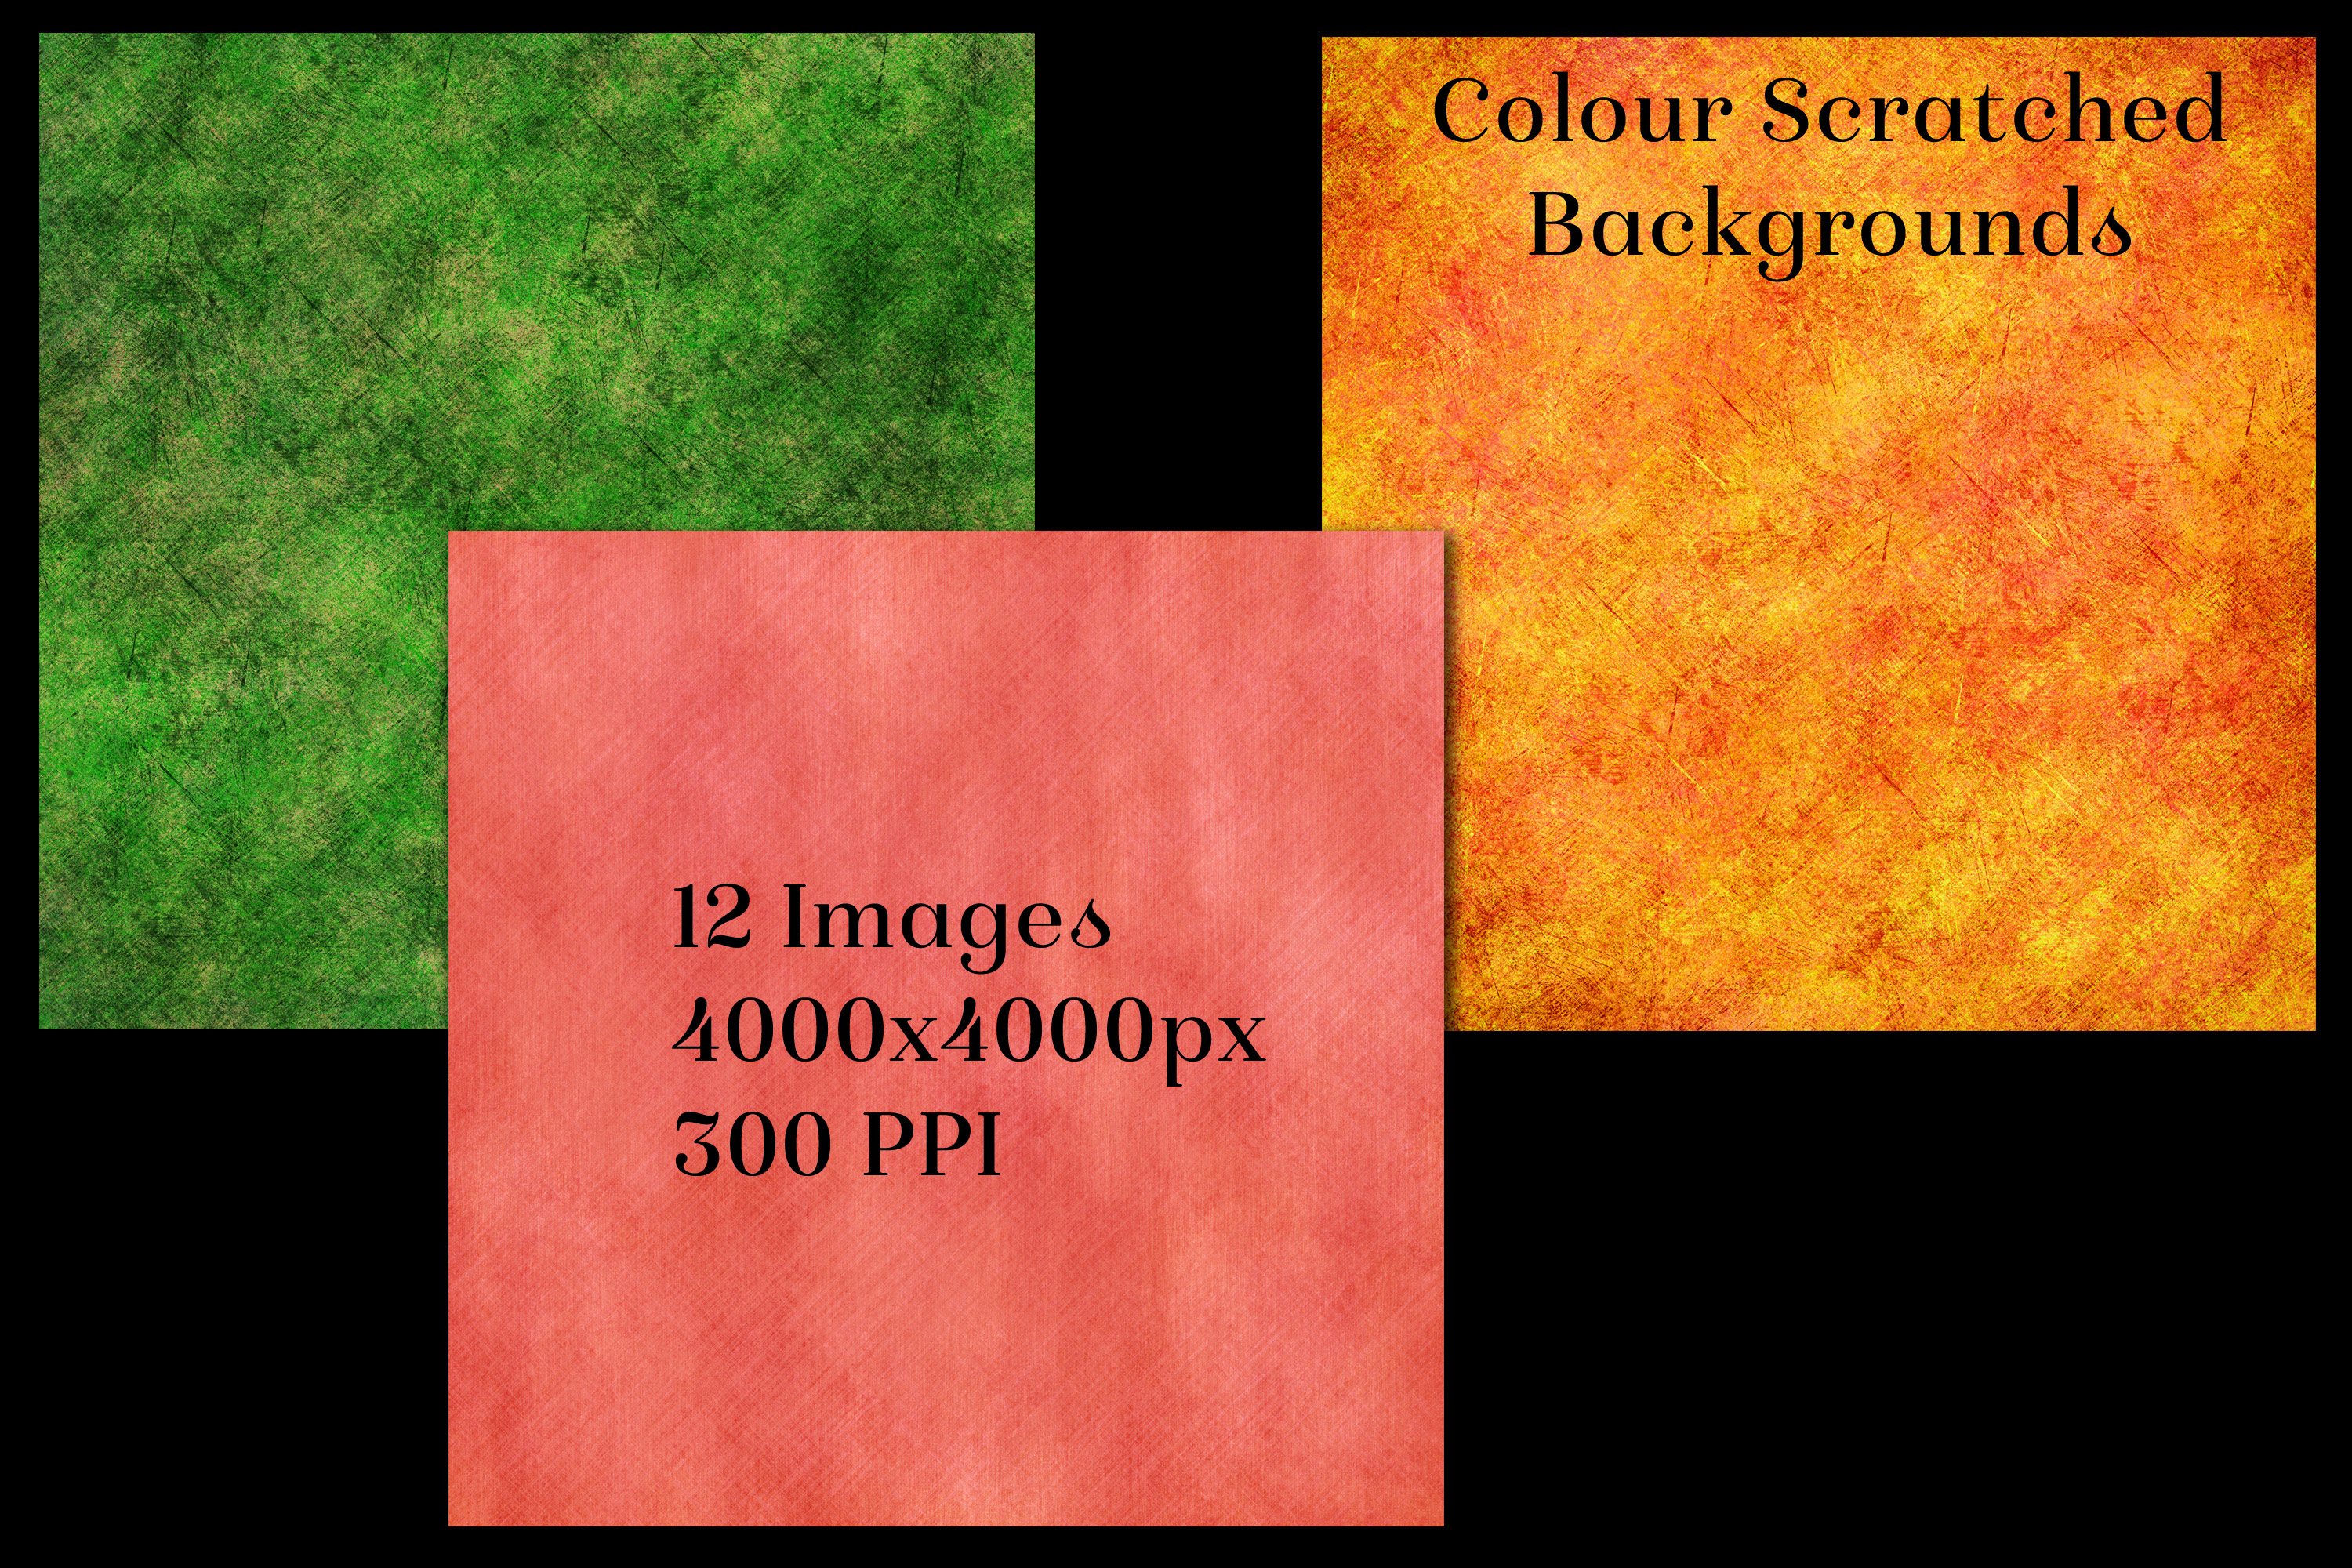 Colour Scratched Backgrounds - 12 Image Textures Set example image 3